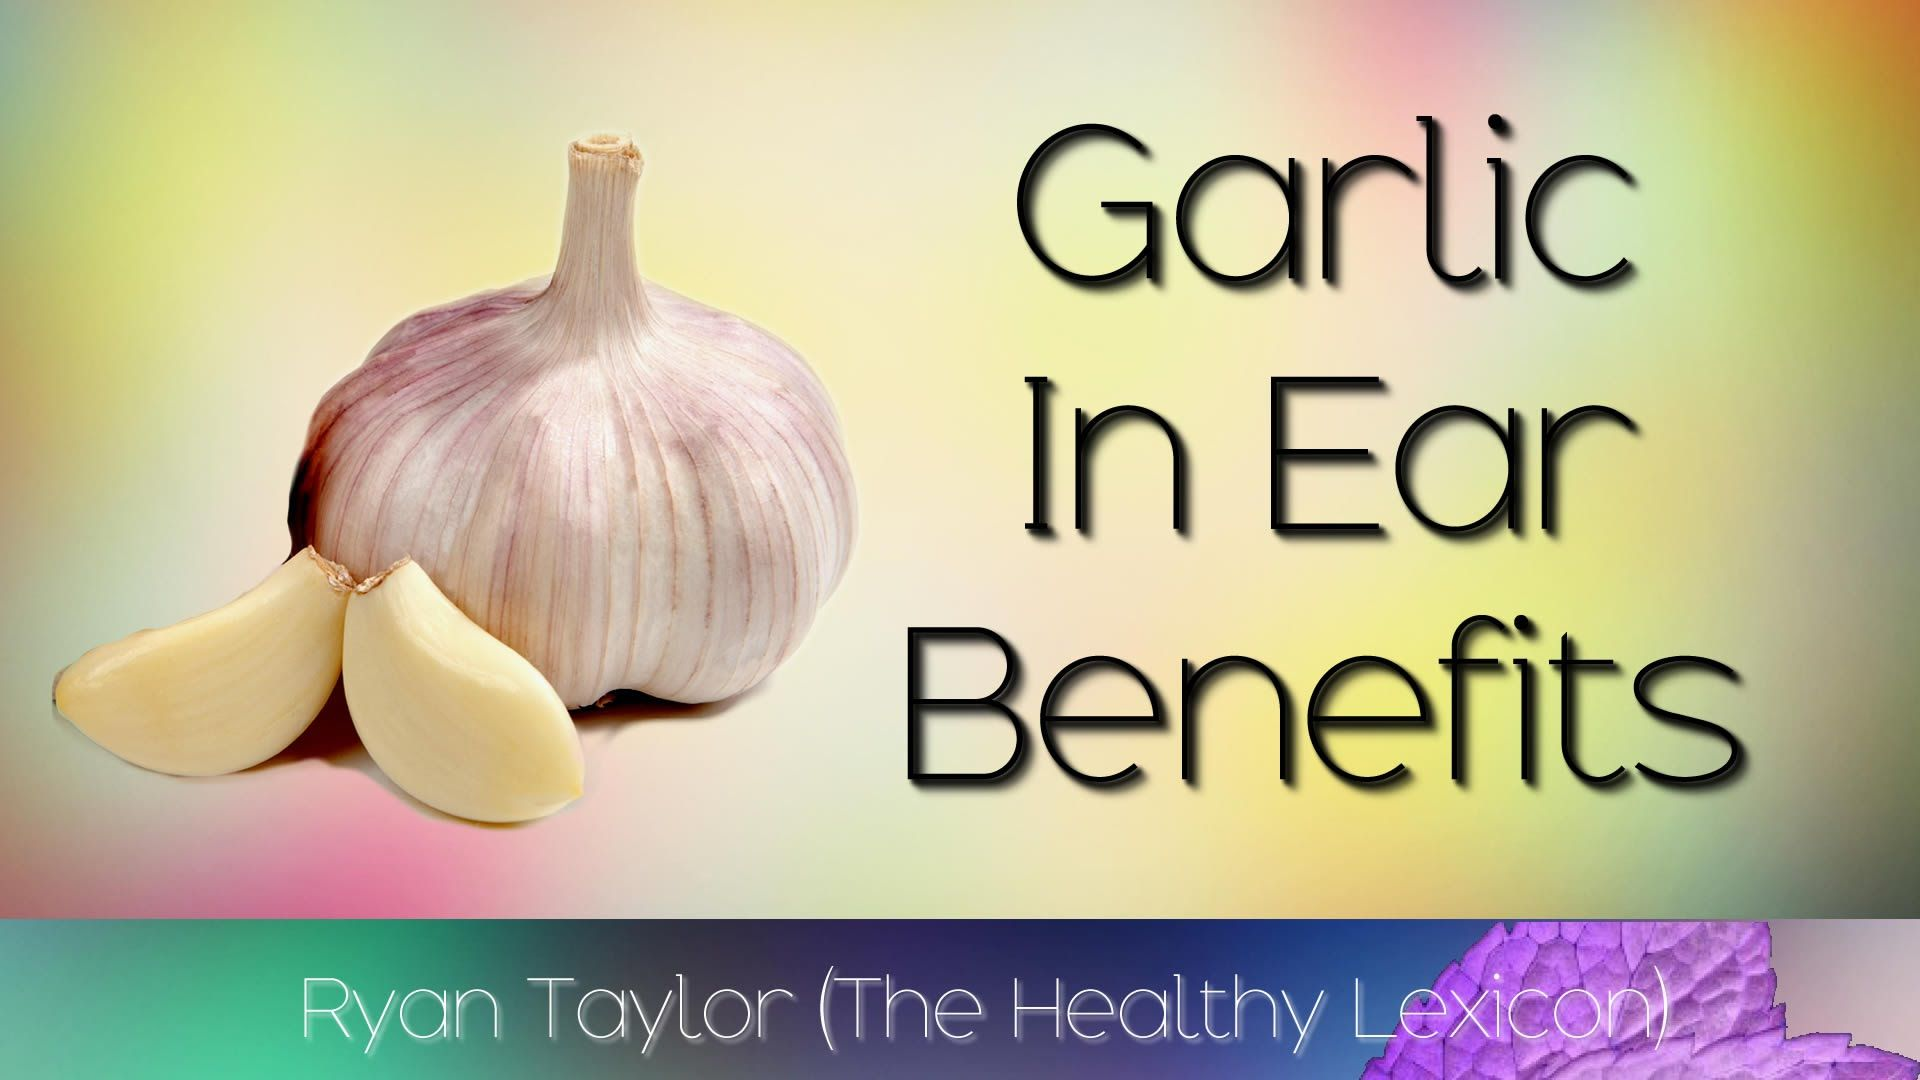 garlic in ear: health benefits (more info @ https://youtu.be